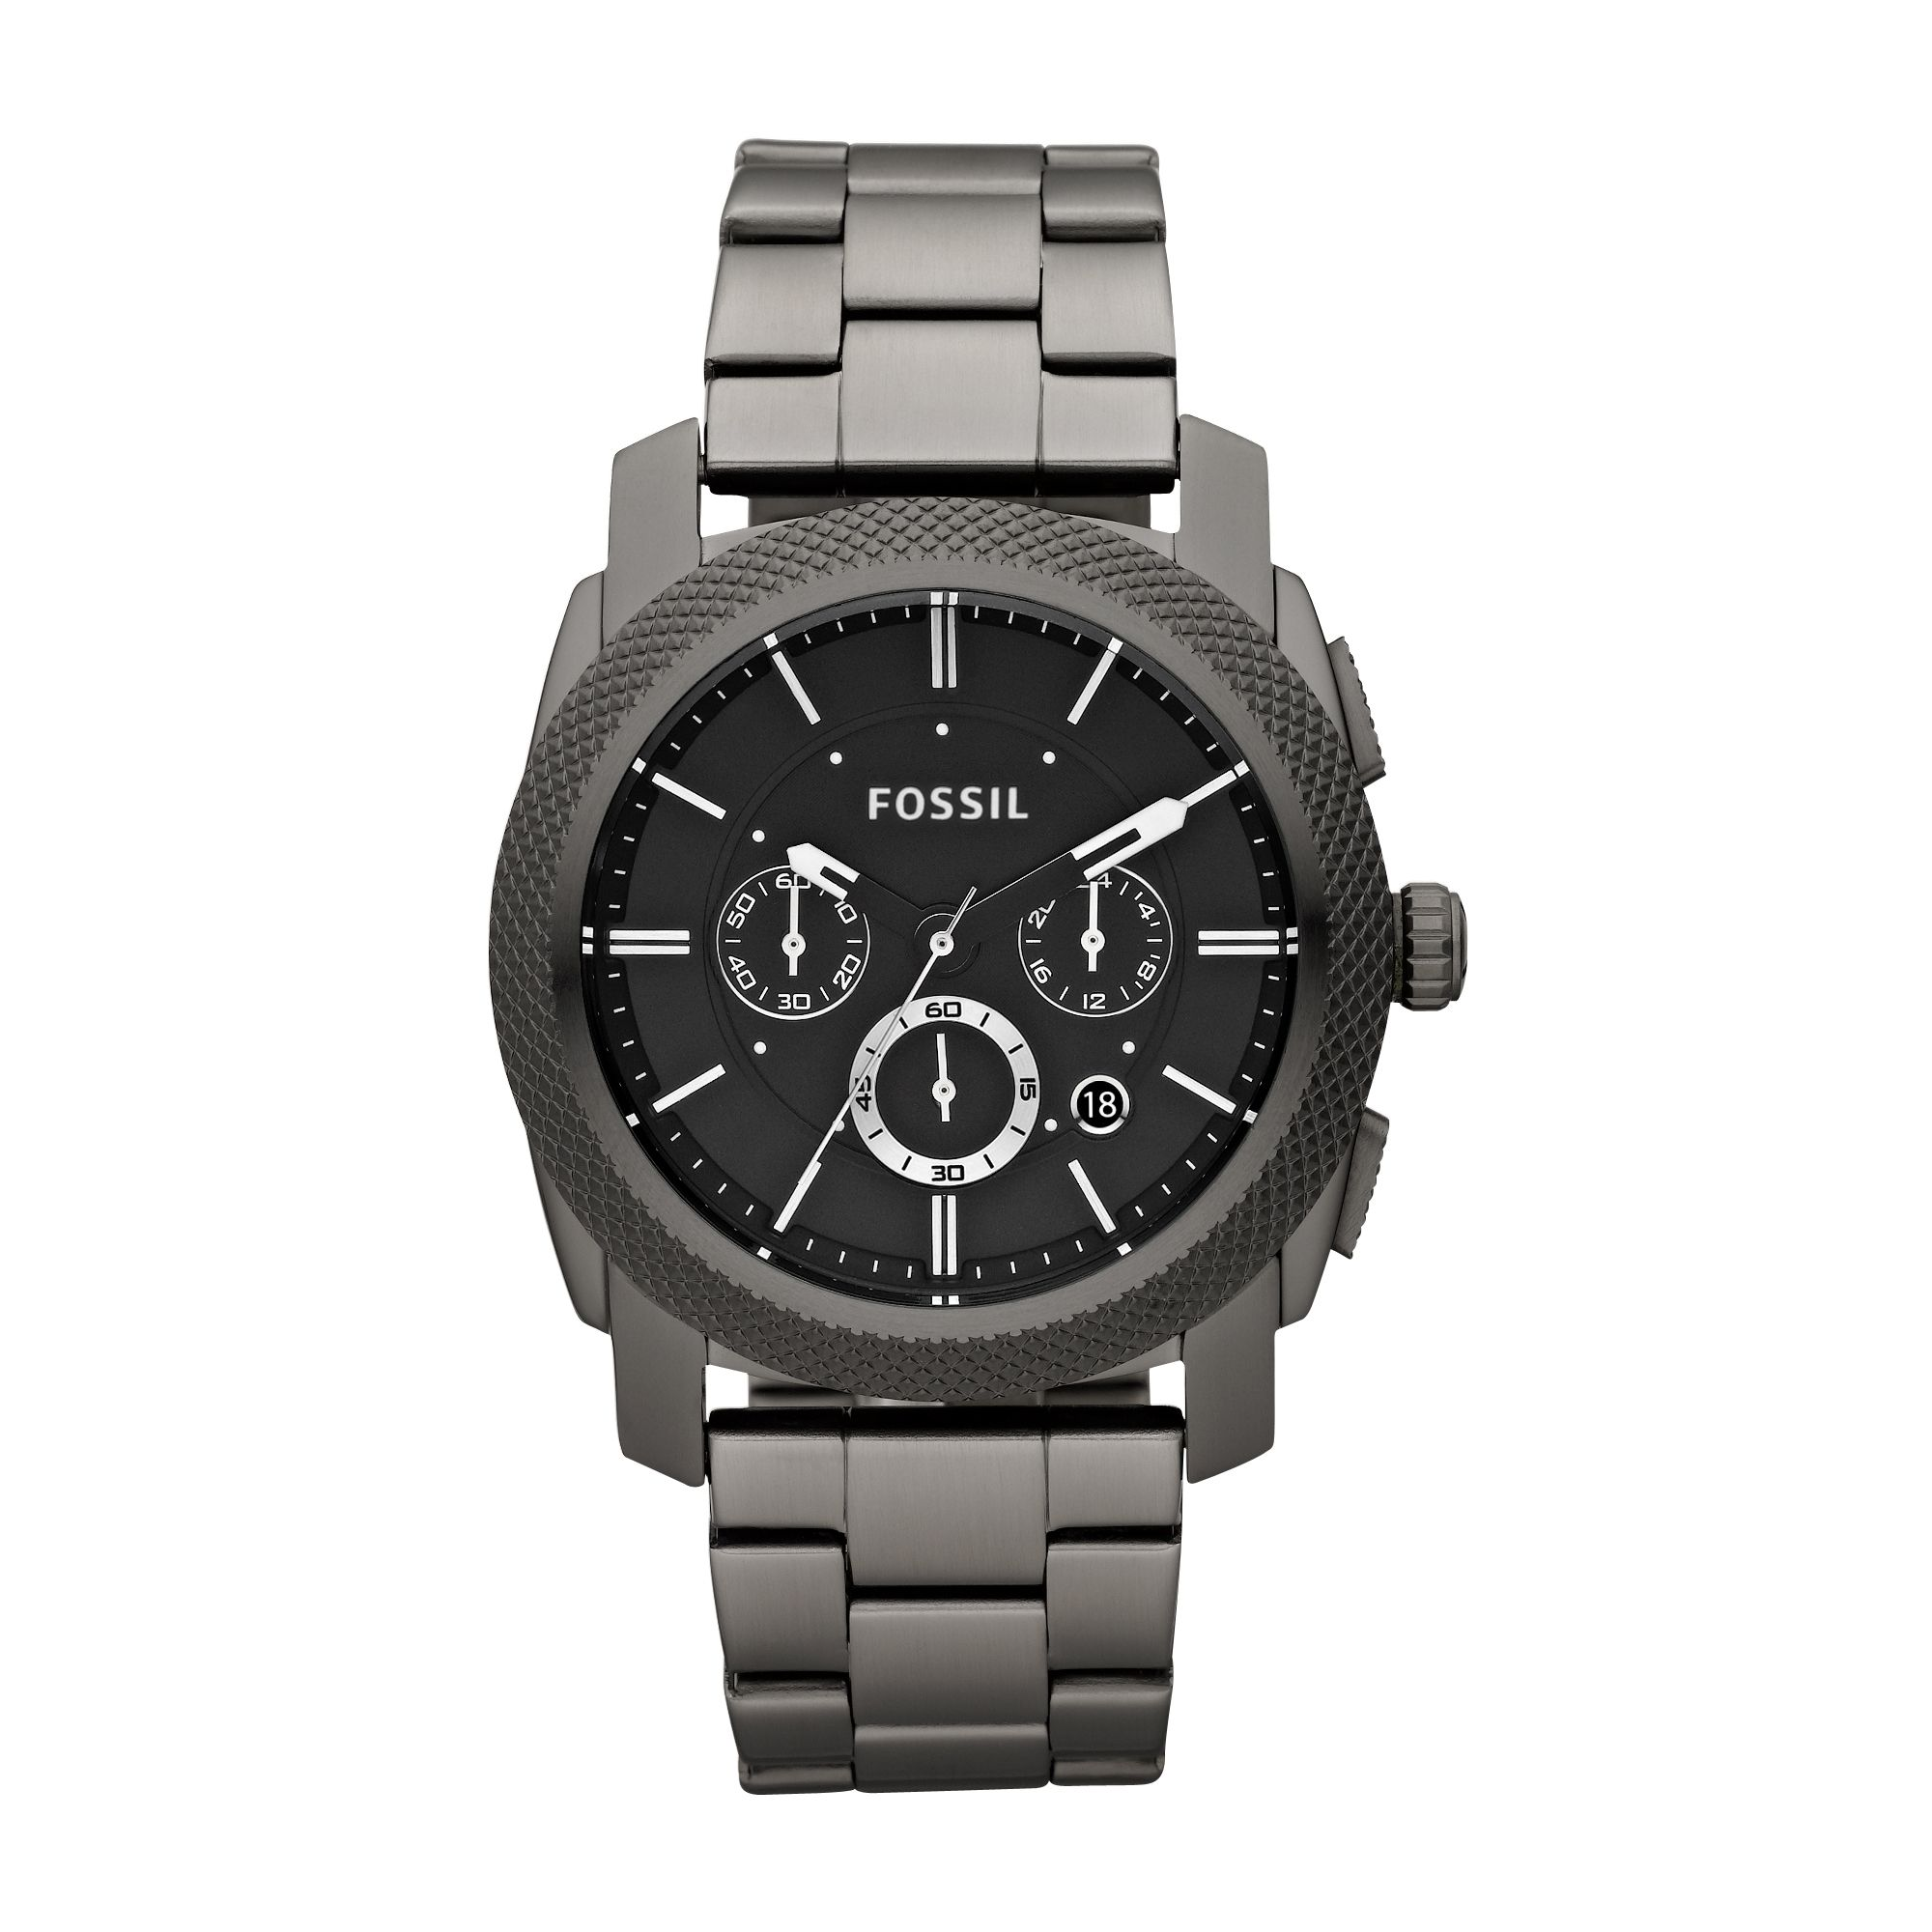 Fossil FS4662 Machine Mens Watch, Smoke 158729560 product image